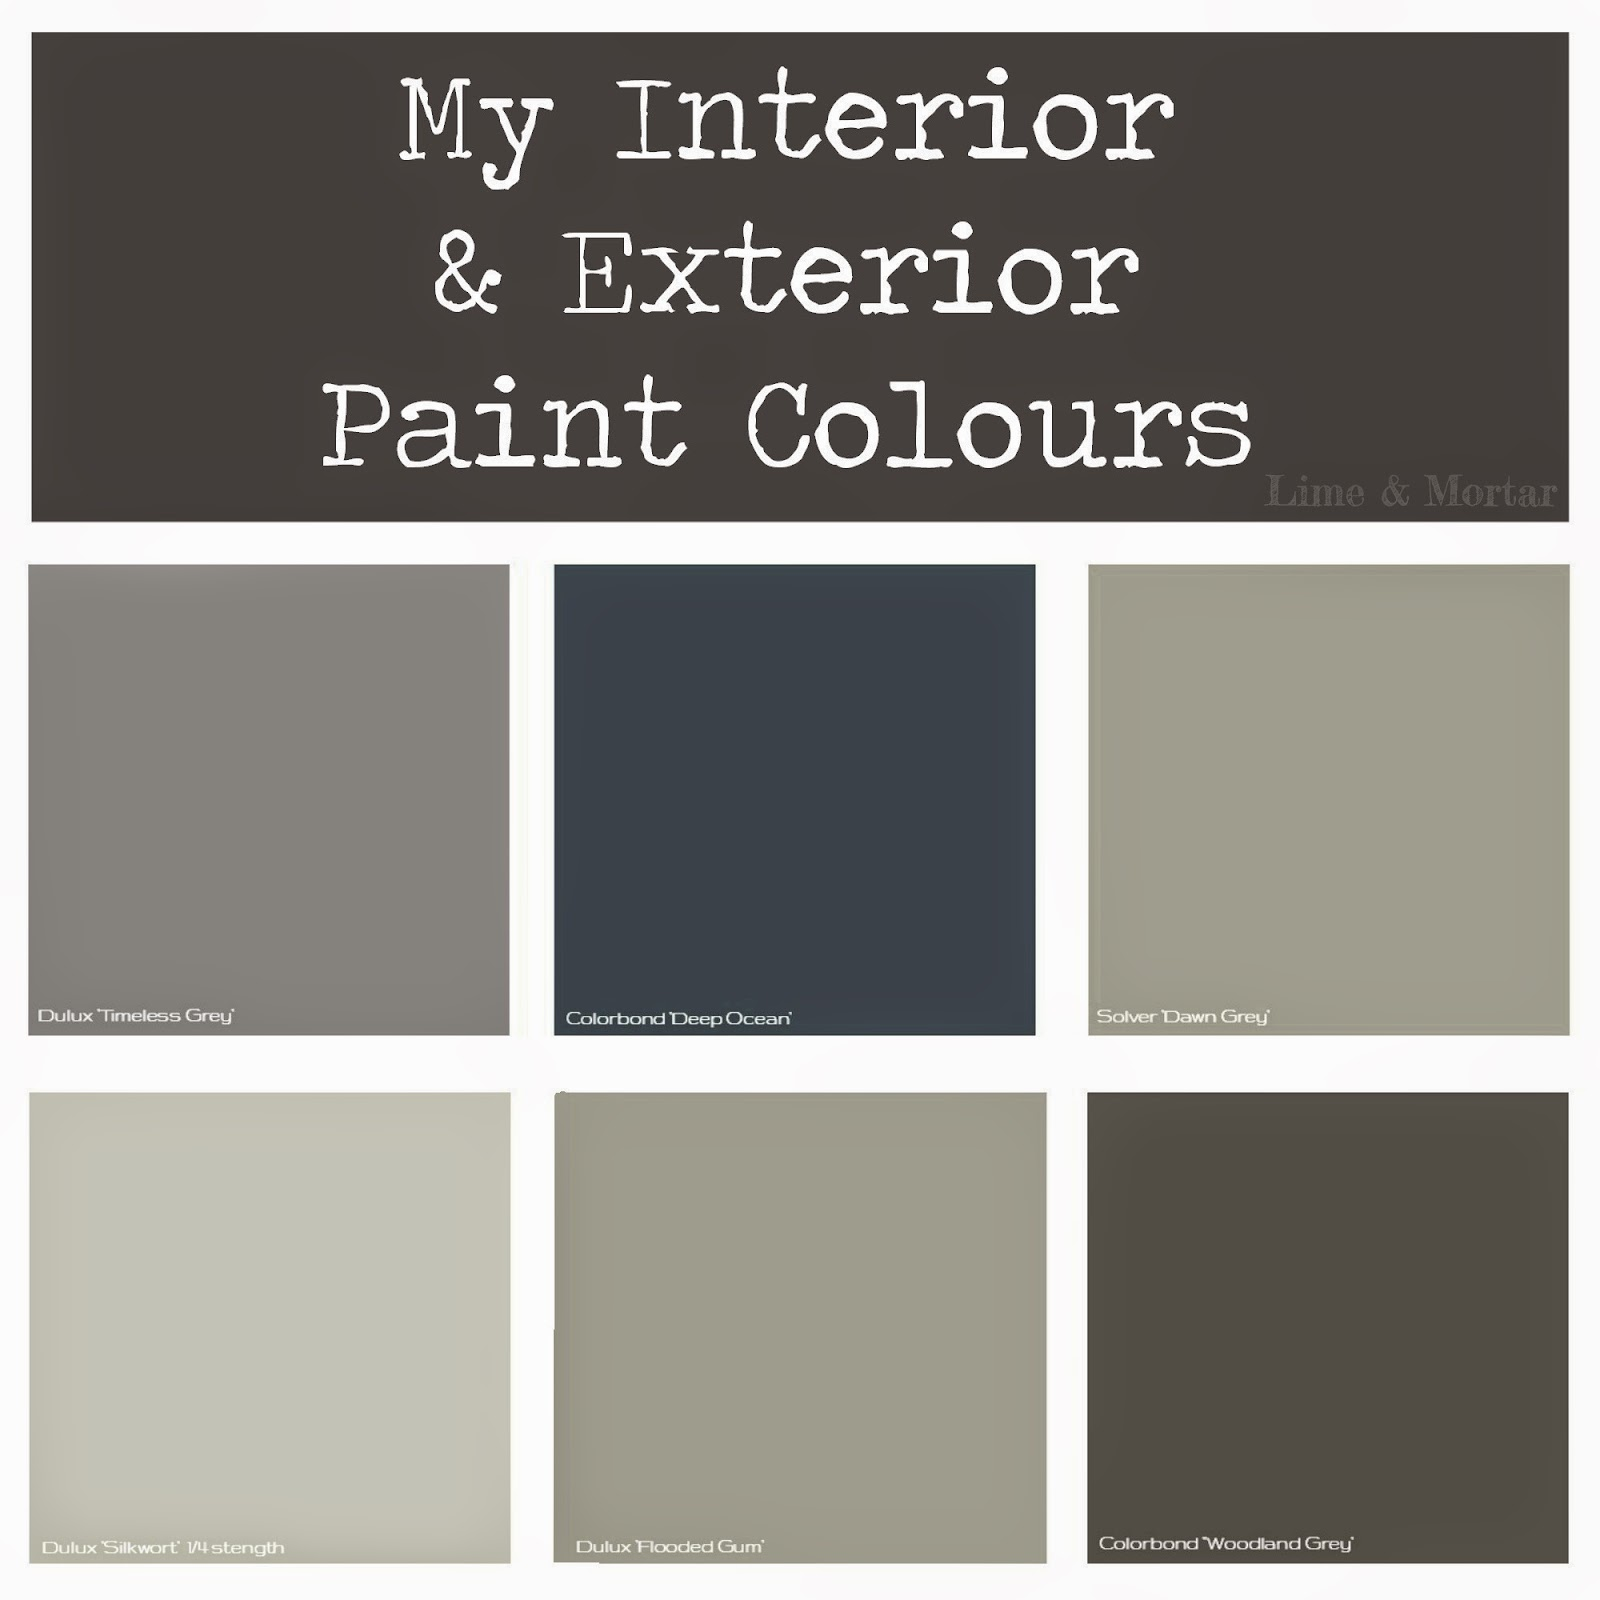 Dulux interior paint colours south africa - Dulux paint colours exterior decor ...